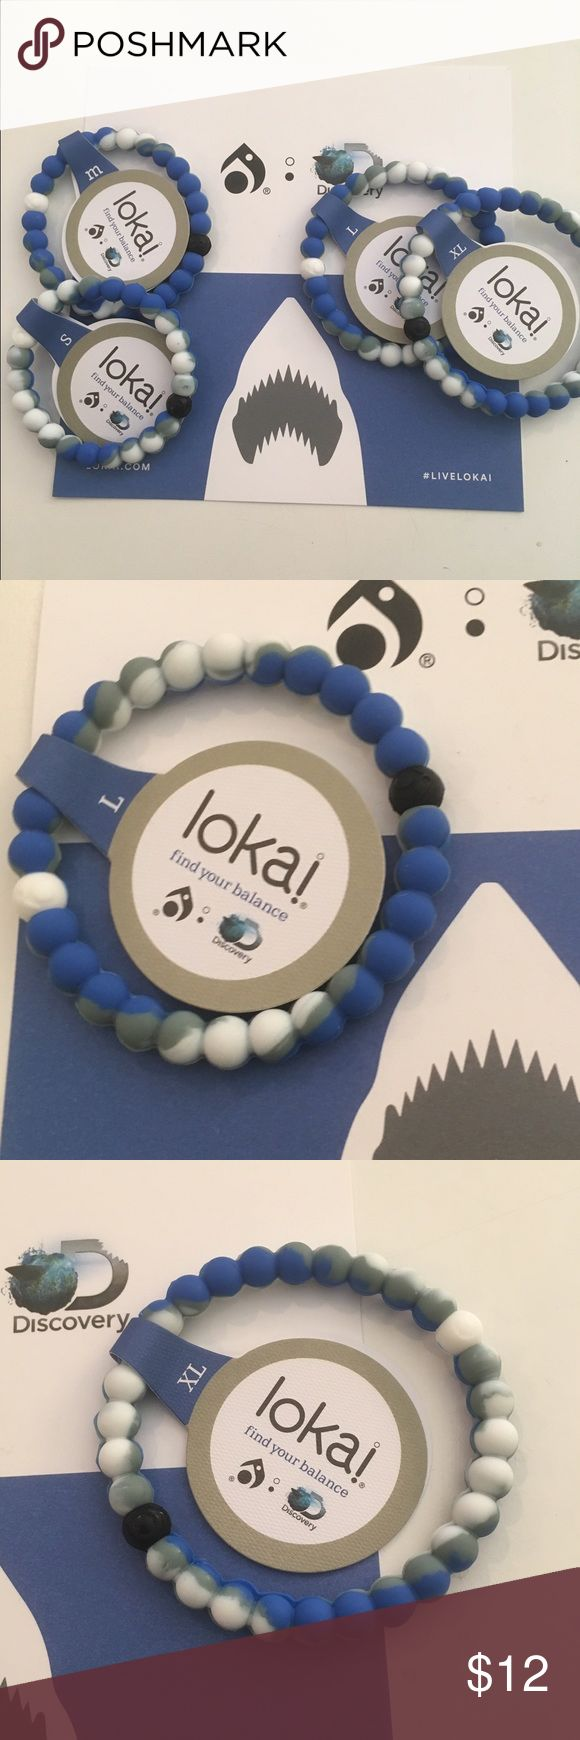 Limited edition Shark Lokai's! Just in These limited edition shark Lokais just came in.  I have a limited amount! When they are gone...they are gone!  Just in time for shark week! Lokai Jewelry Bracelets